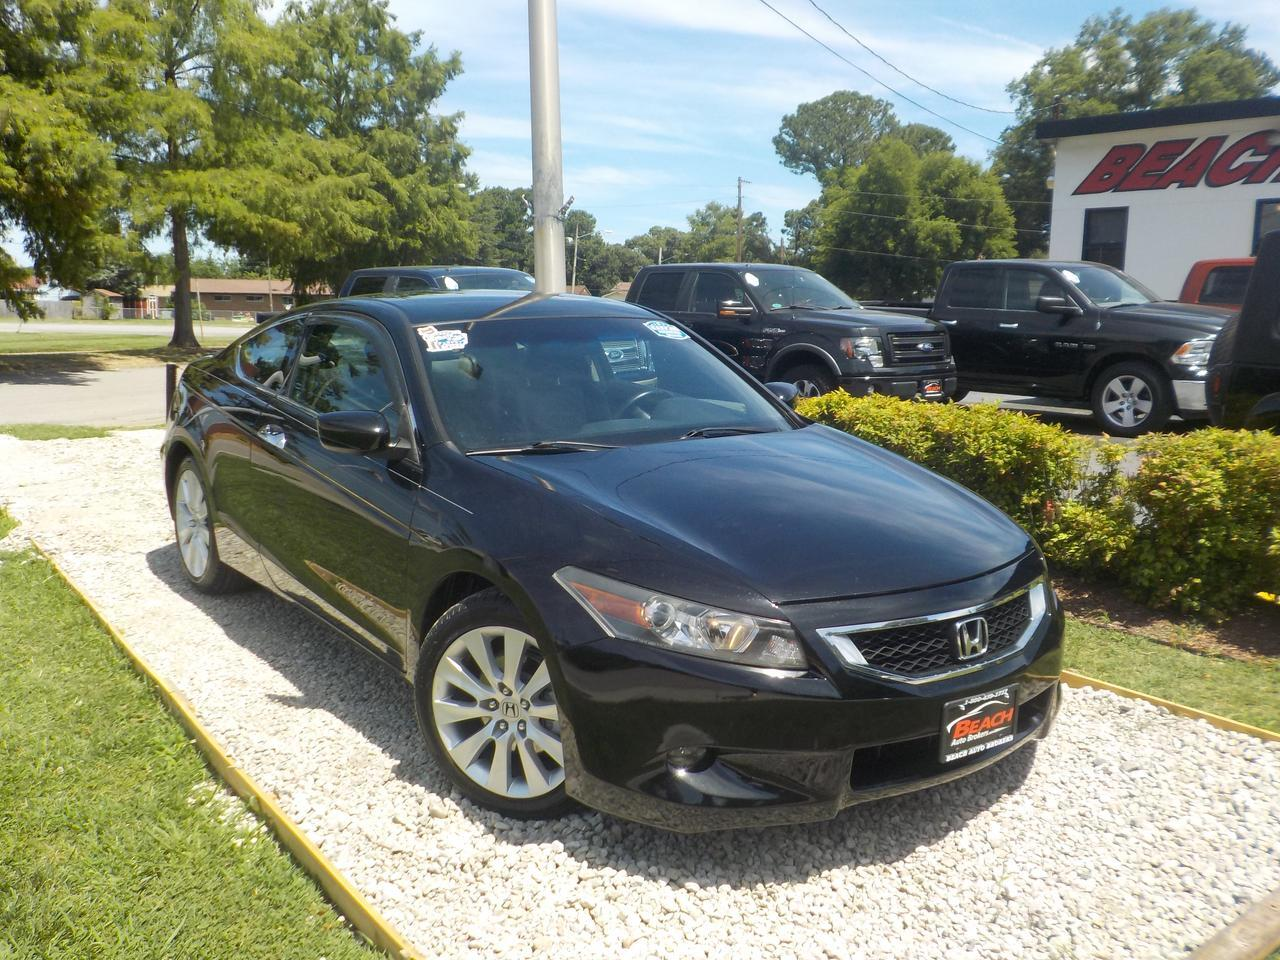 2010 HONDA ACCORD EX-L V6 COUPE, WARRANTY, LEATHER, SUNROOF, SATELLITE RADIO, 1 OWNER, ONLY 46K MILES!